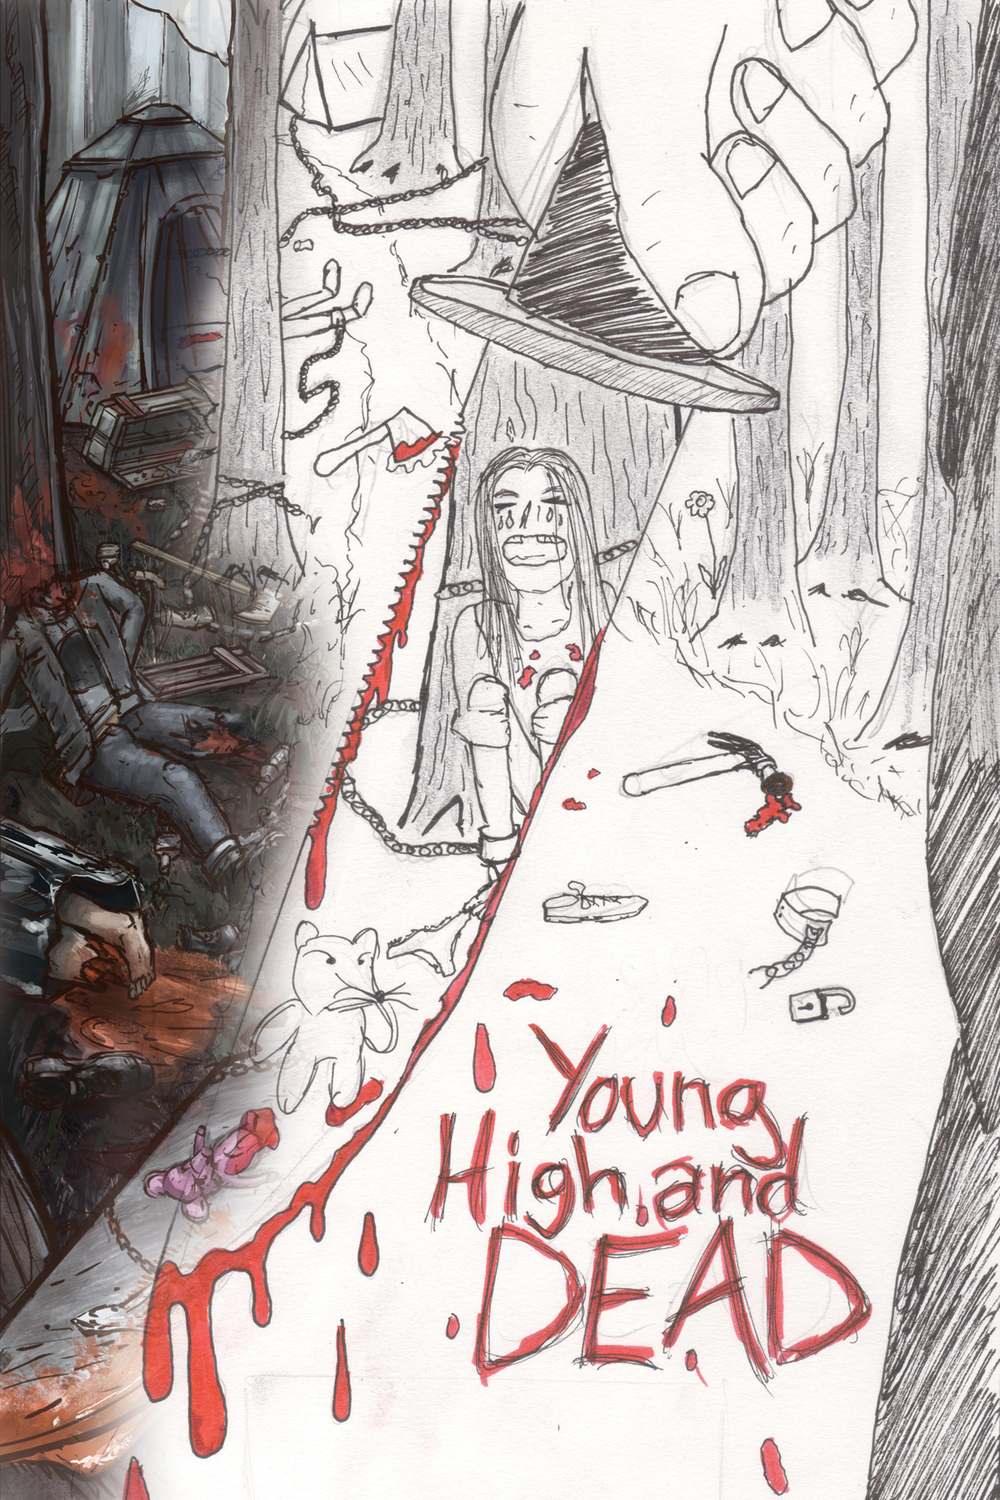 Brand new Young High and Dead Poster for 2015 - designed by Luke B